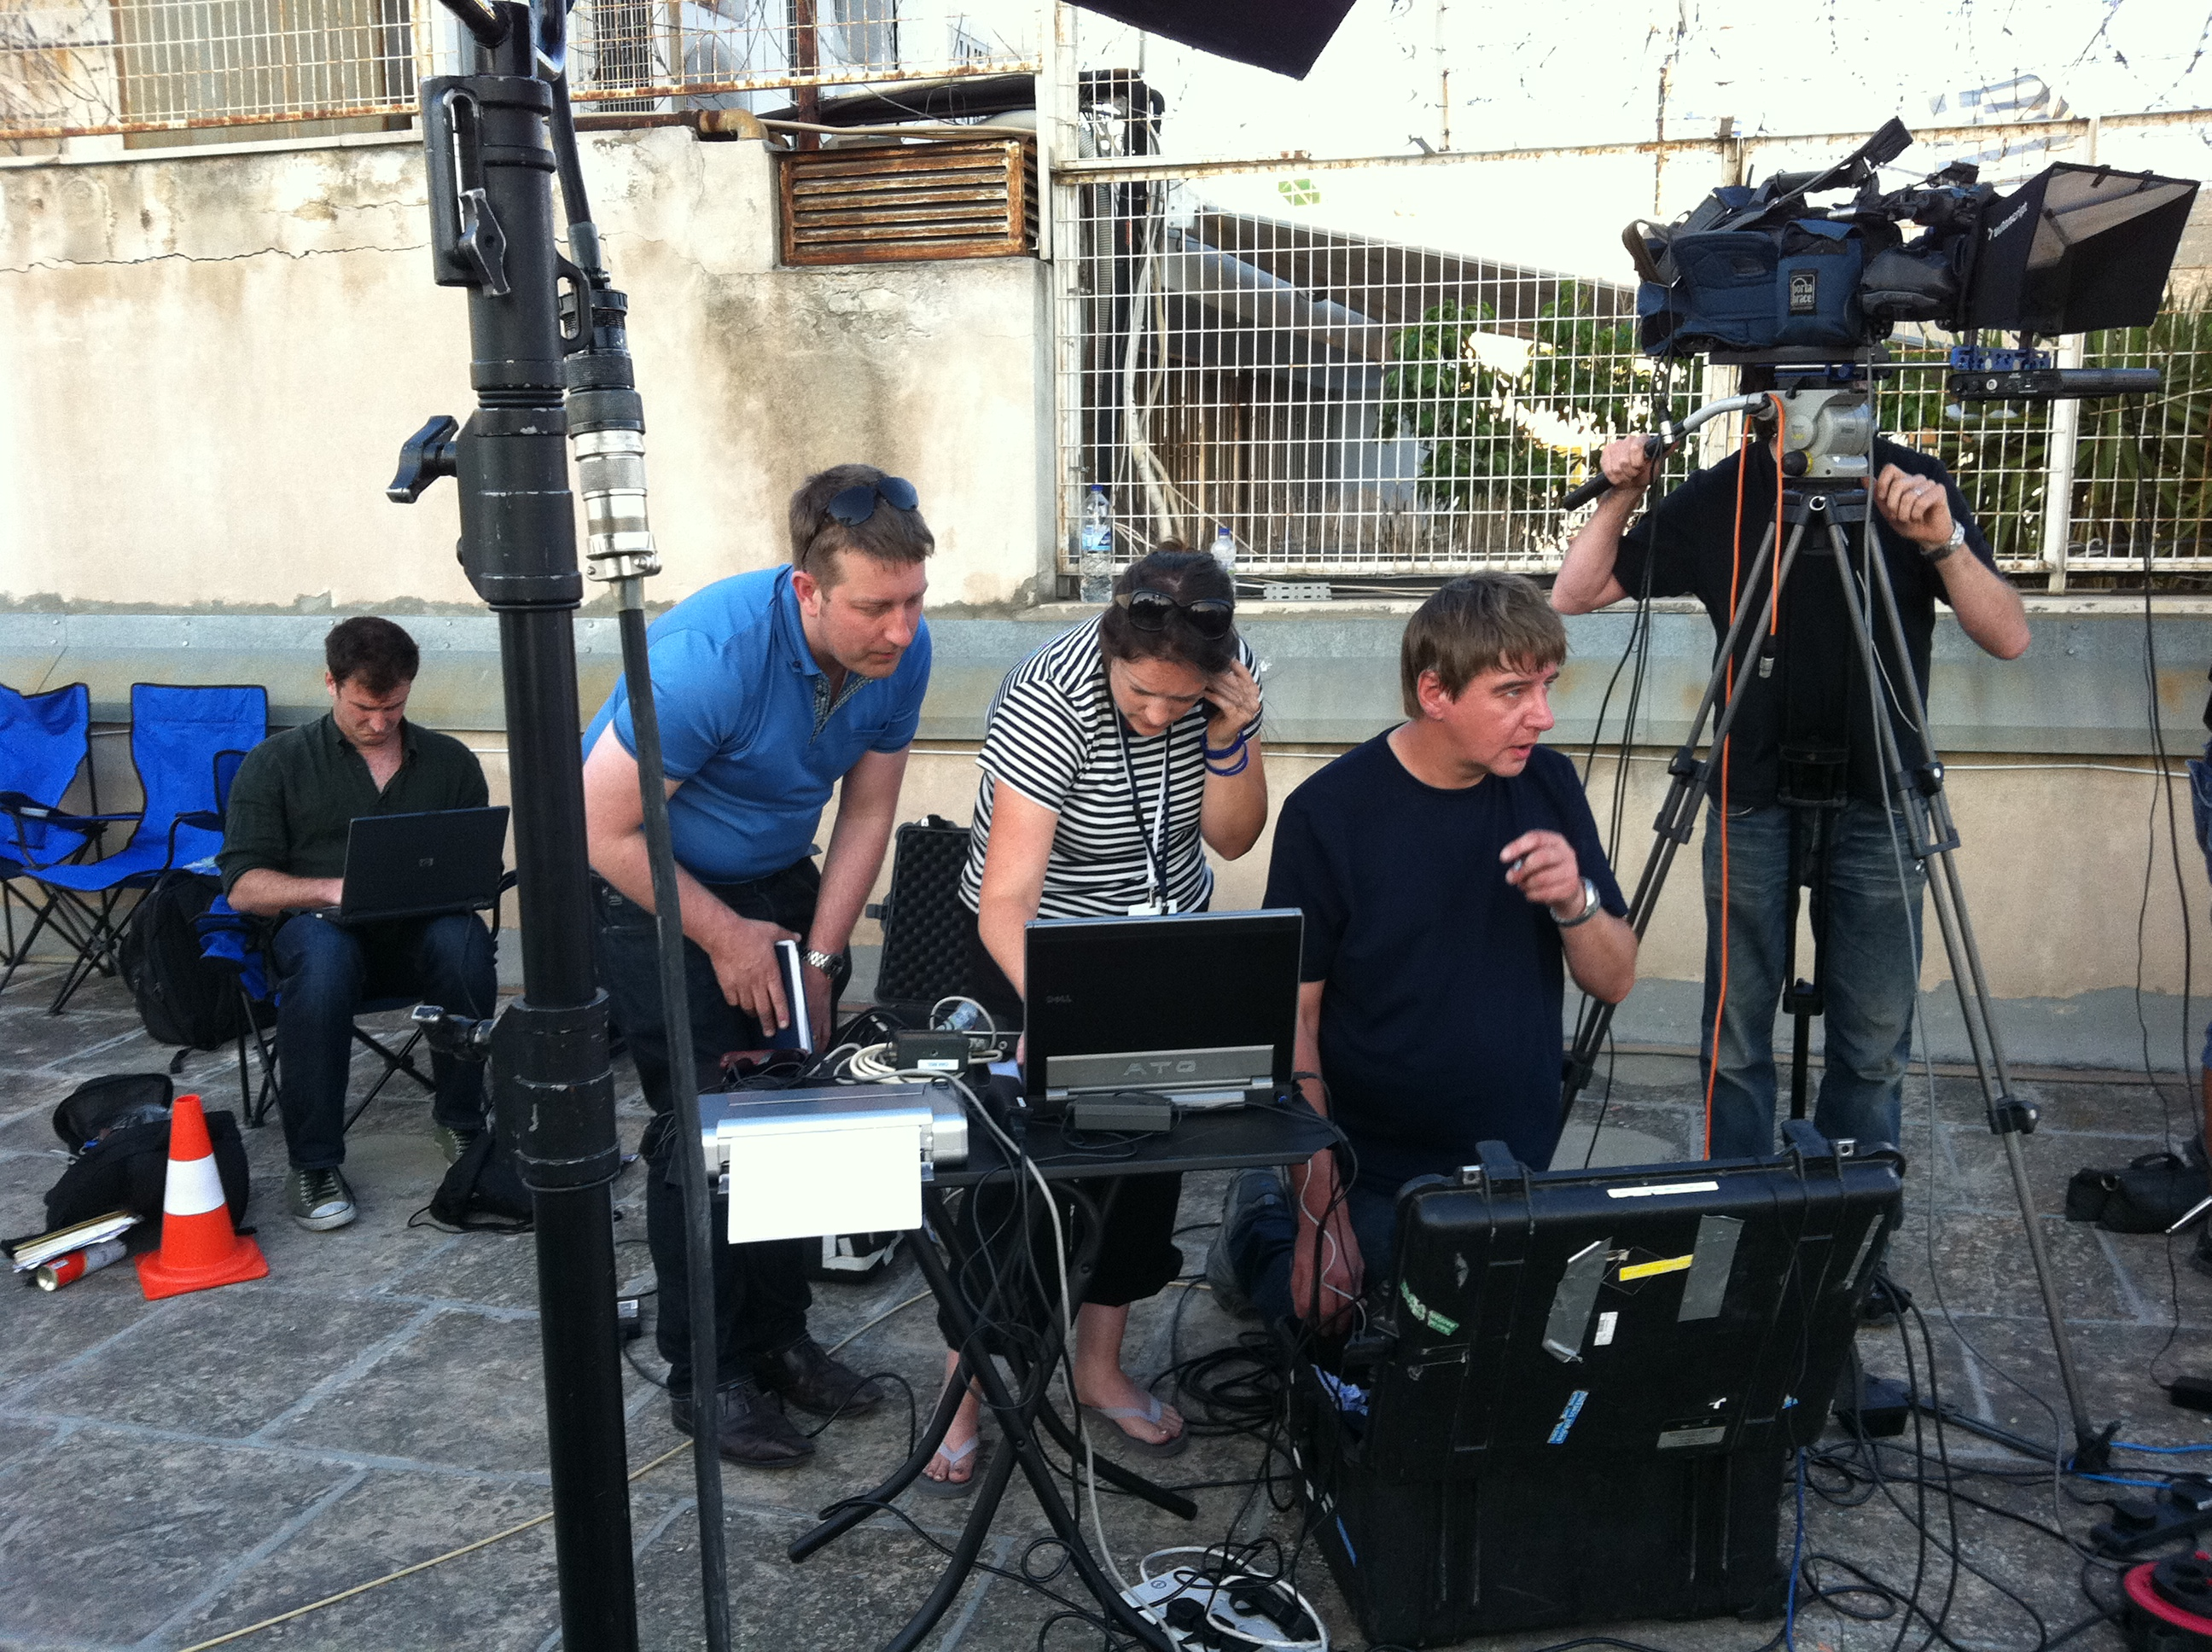 Sarah Corp and Channel 4 News team covering the Greek Elections in 2012